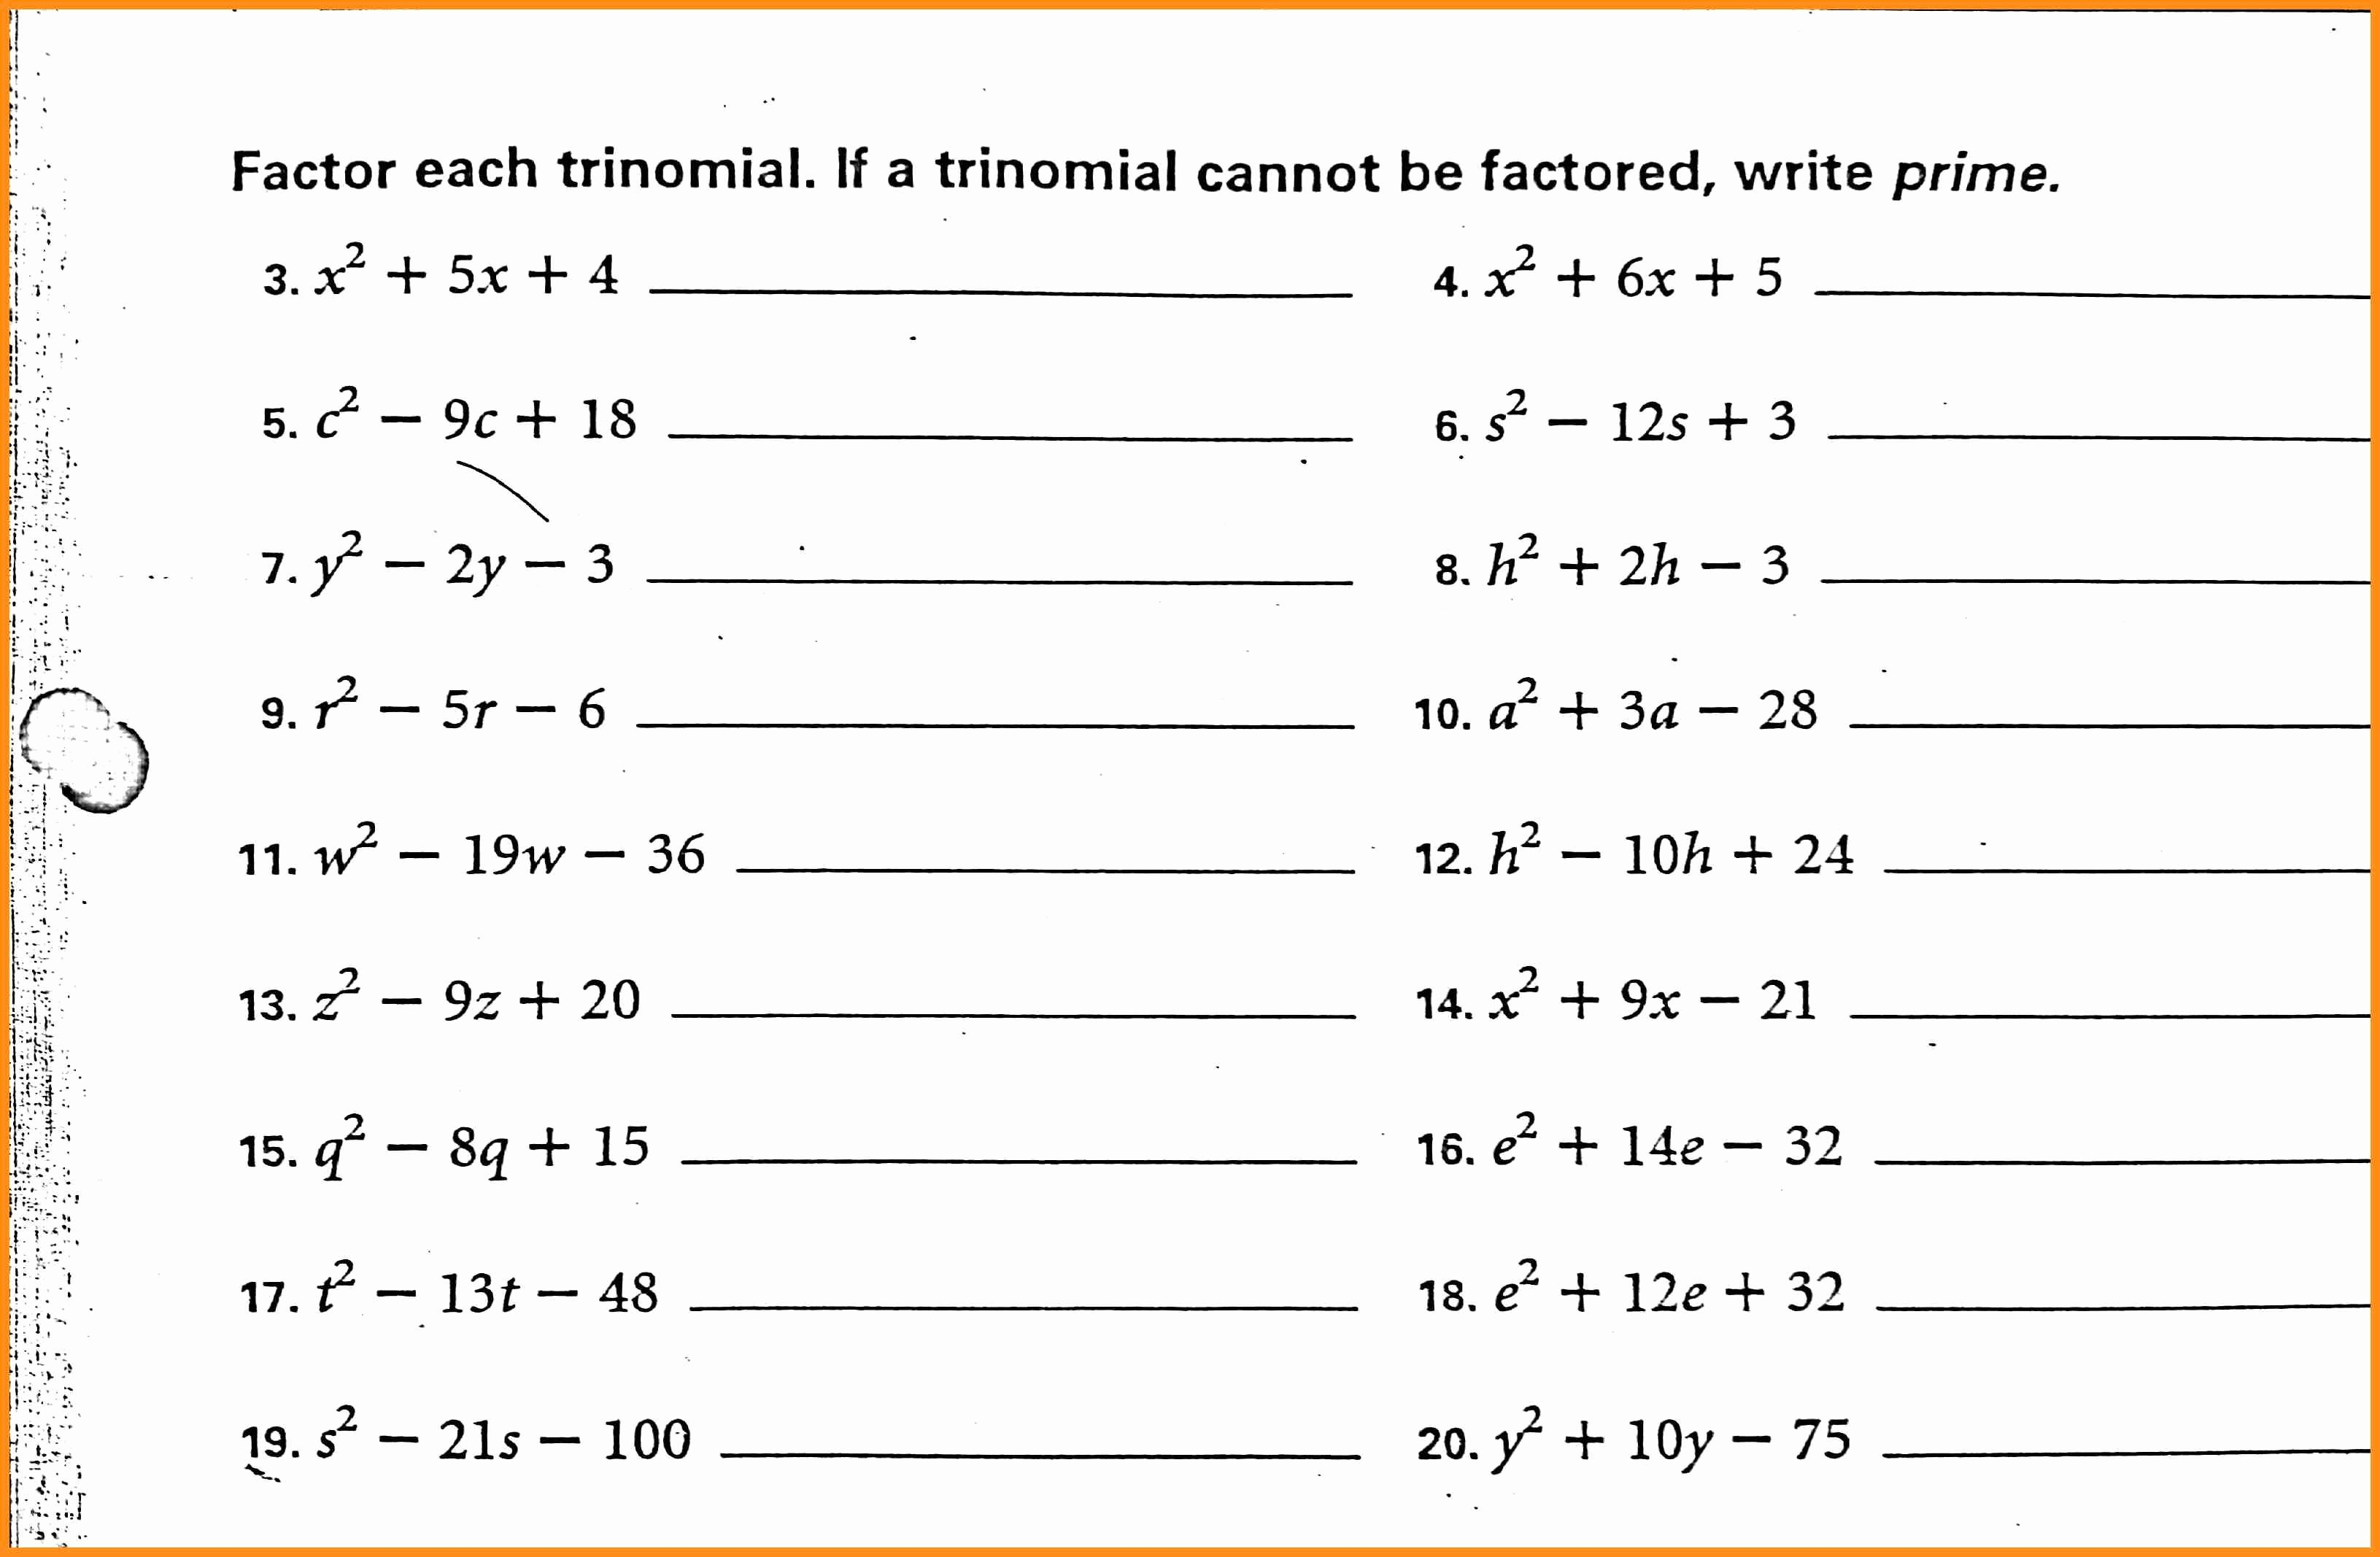 Factoring Trinomials Practice Worksheet Lovely 56 Factoring Polynomials Worksheet Pdf Factoring